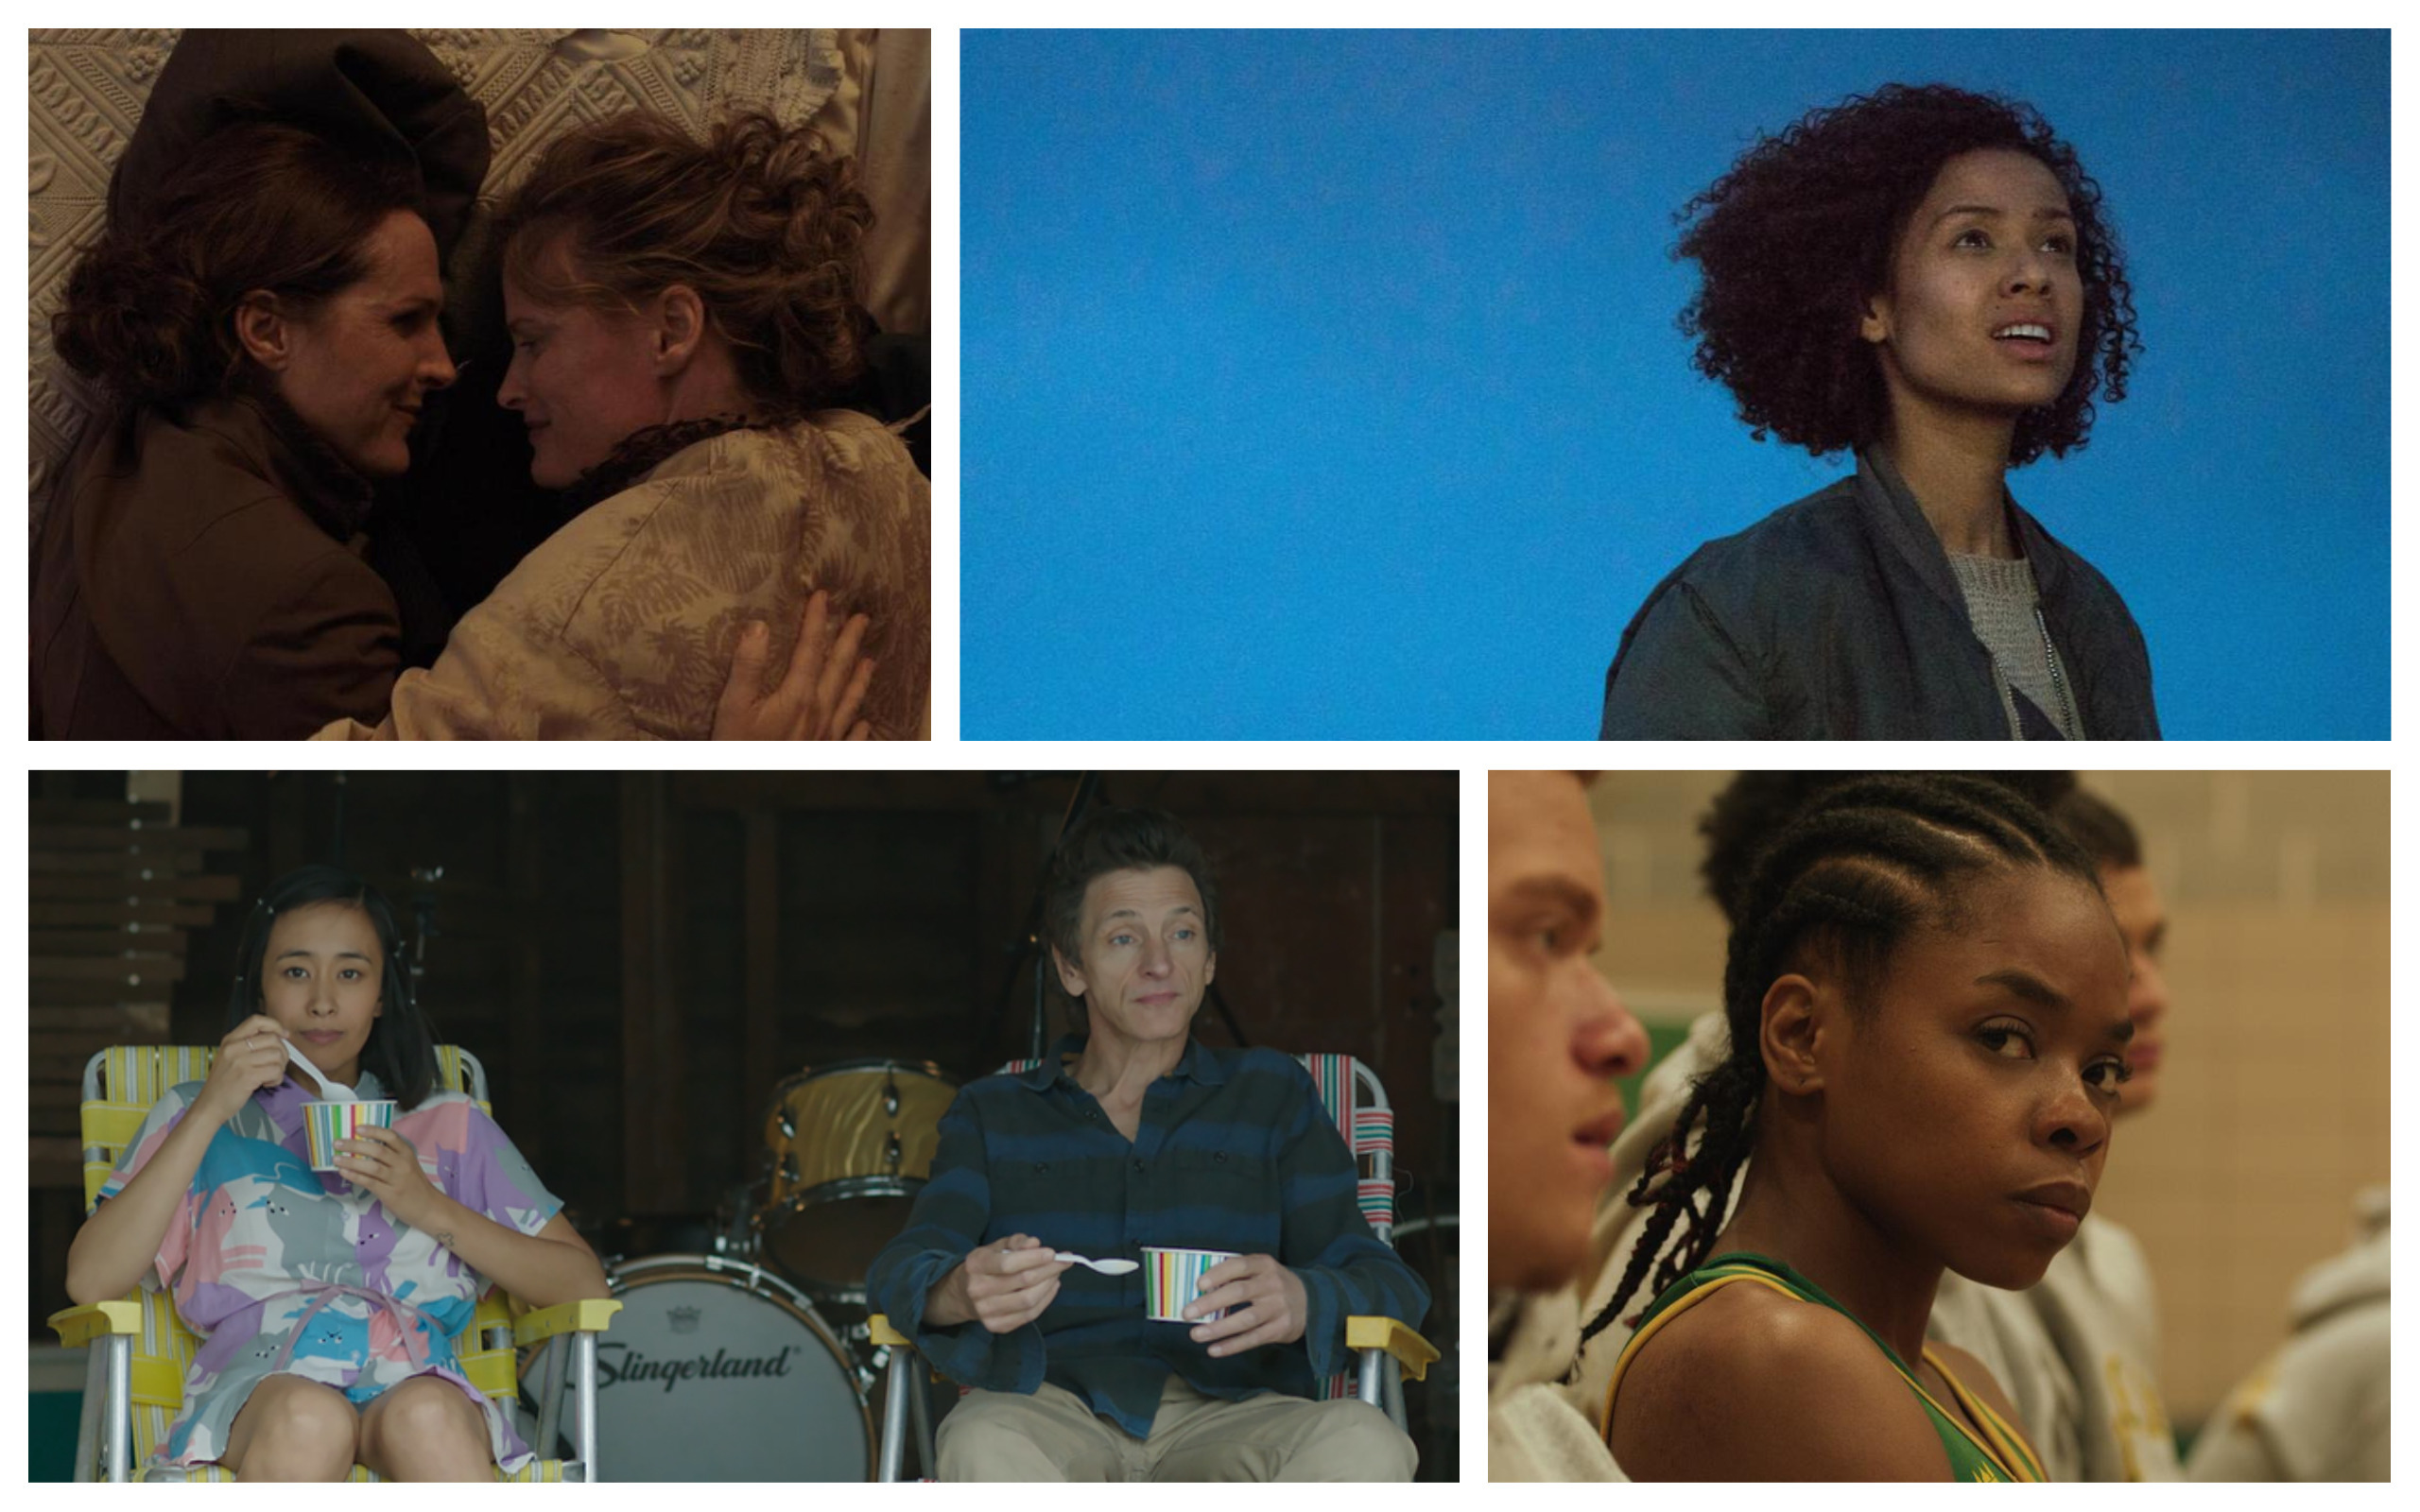 14 Movies From Female Filmmakers to See At SXSW, From 'Fast Color' to 'Sadie'